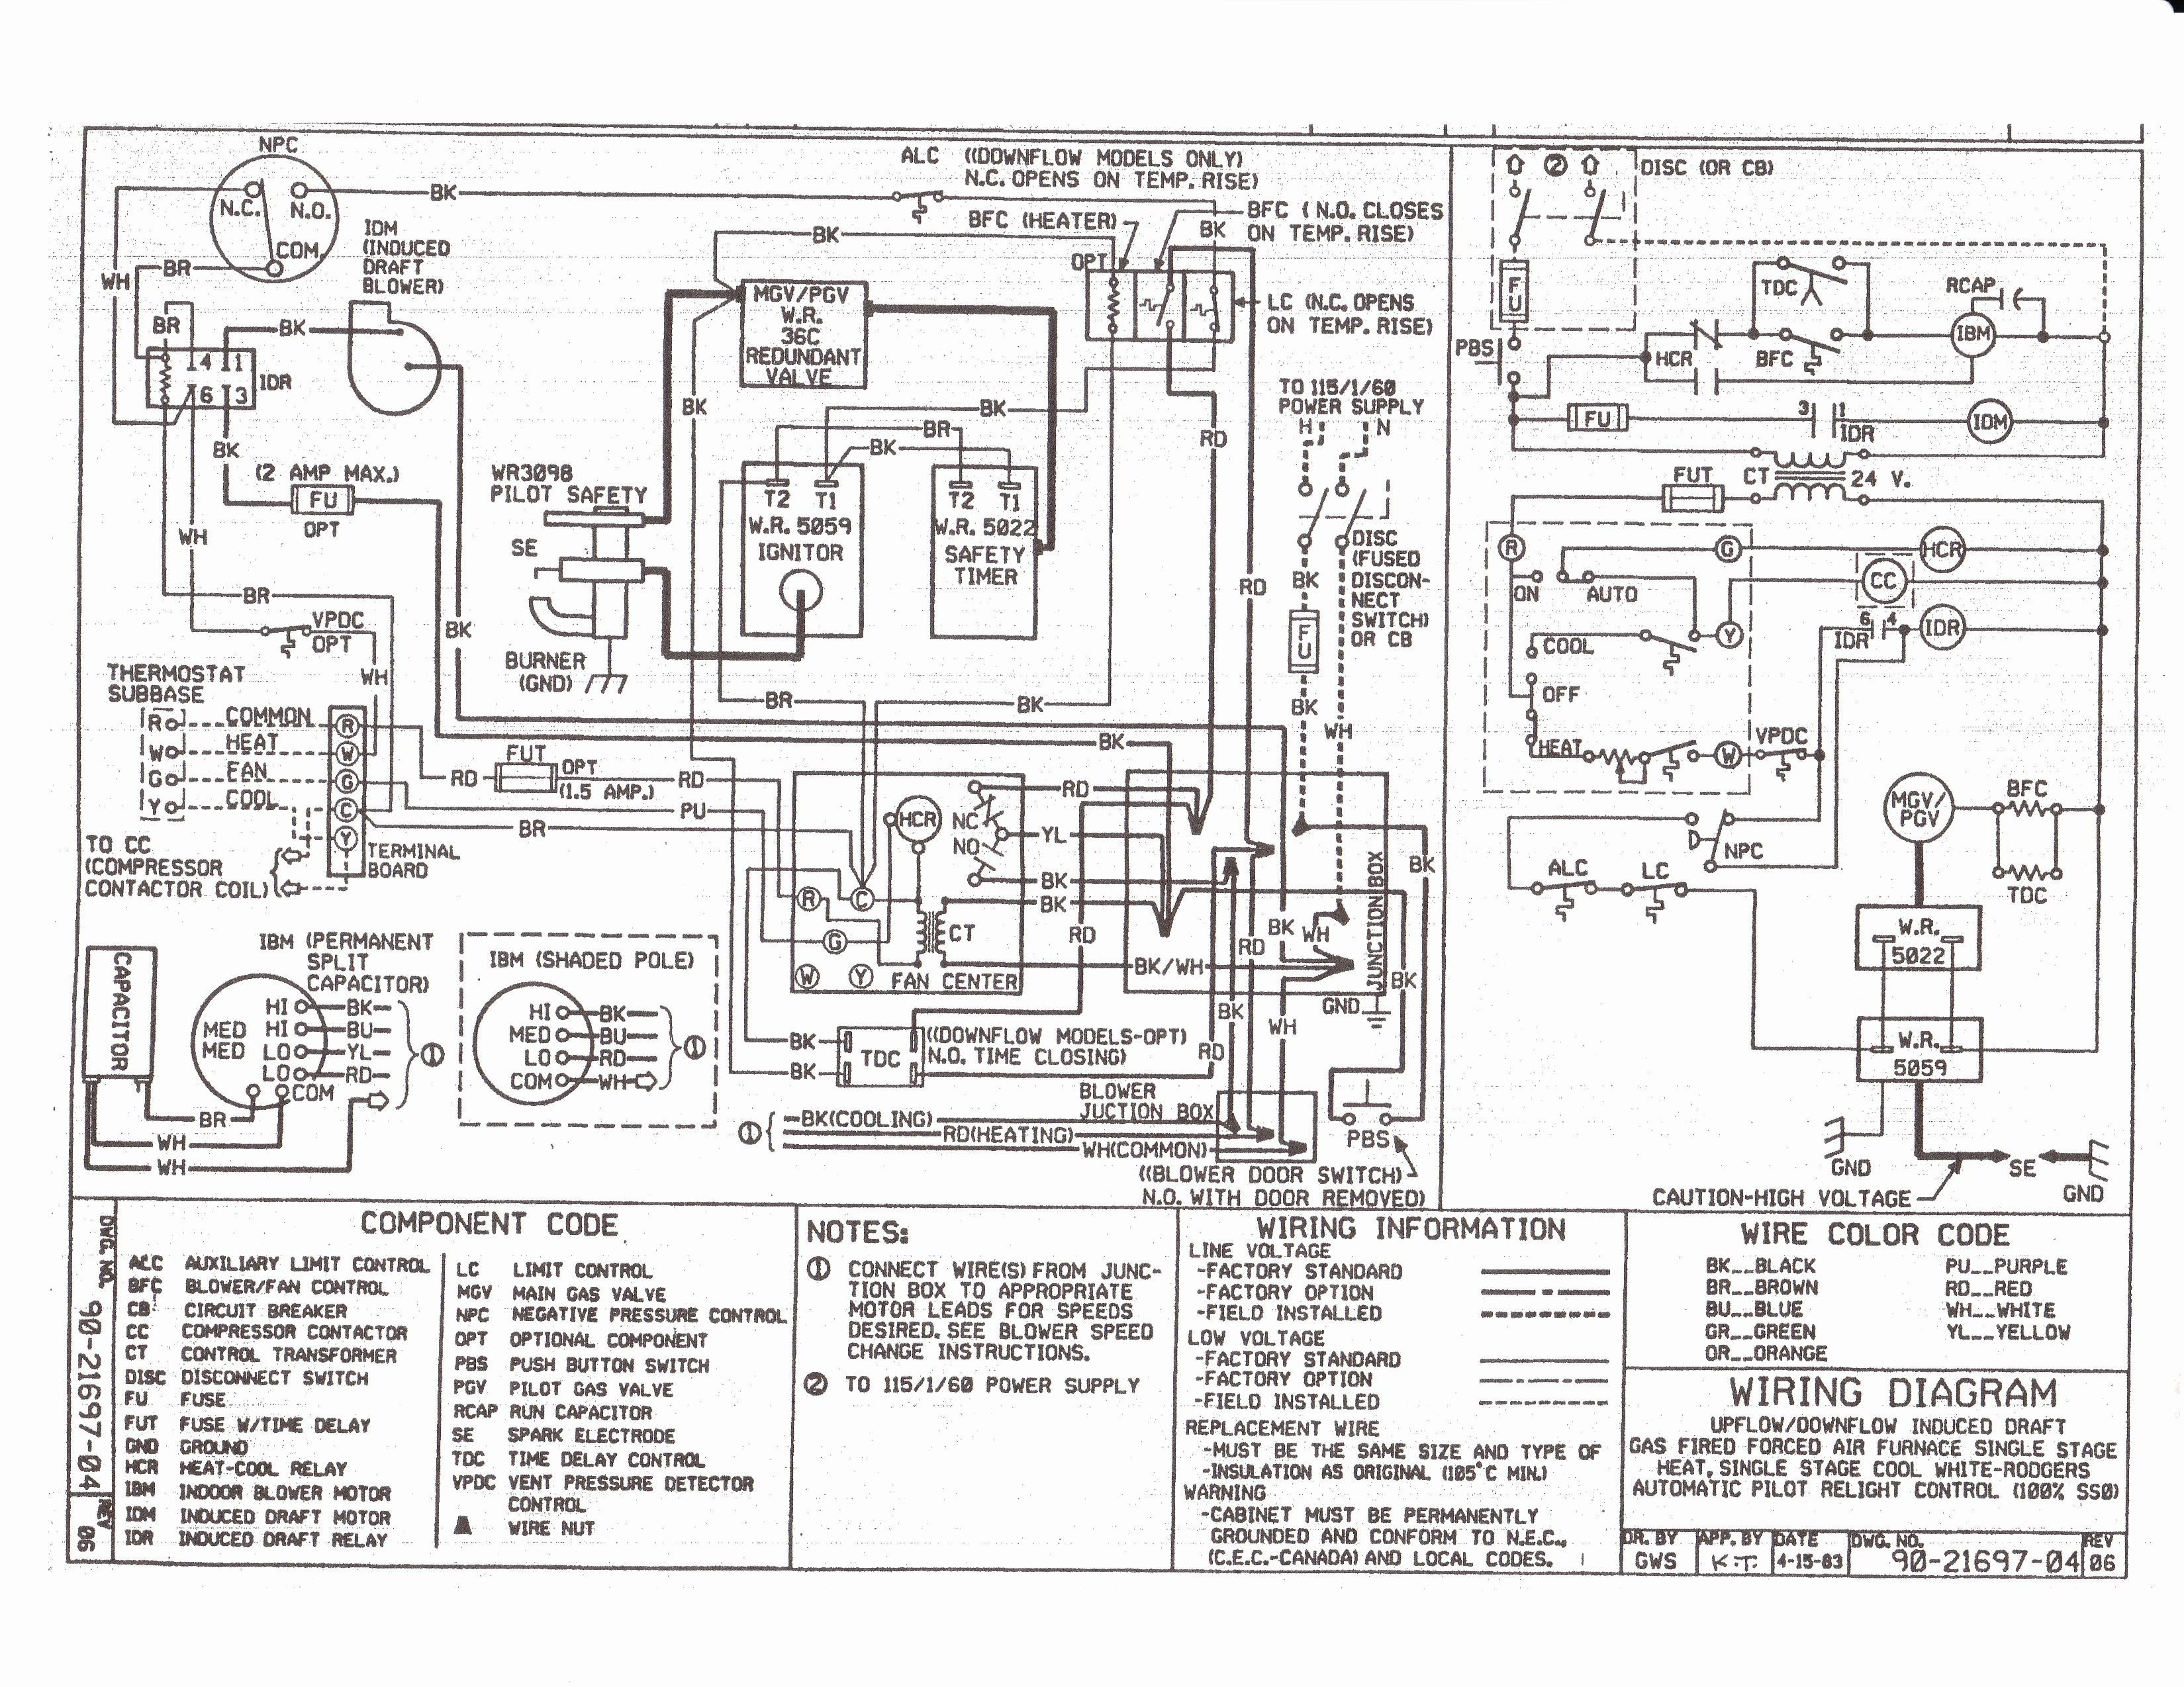 New Wiring Diagram Mobile Home Diagram Diagramsample Diagramtemplate Wiringdiagram Diagramcha Electrical Wiring Diagram Electric Furnace Thermostat Wiring